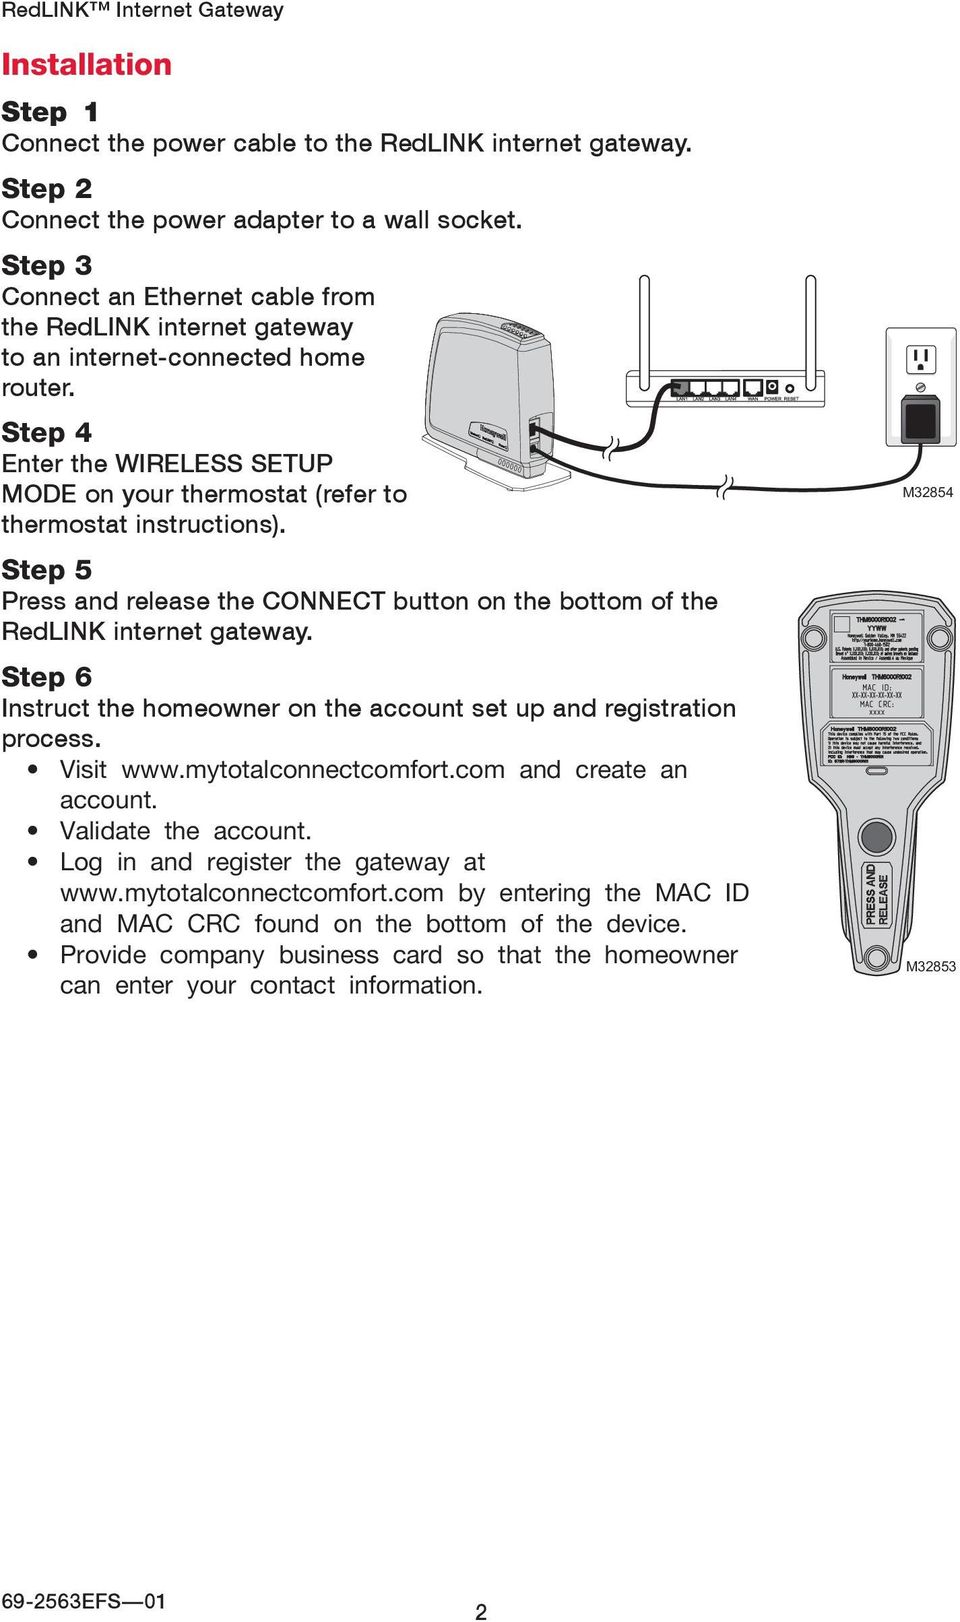 Step 5 Press and release the CONNECT button on the bottom of the RedLINK internet gateway. Step 6 Instruct the homeowner on the account set up and registration process. Visit www.